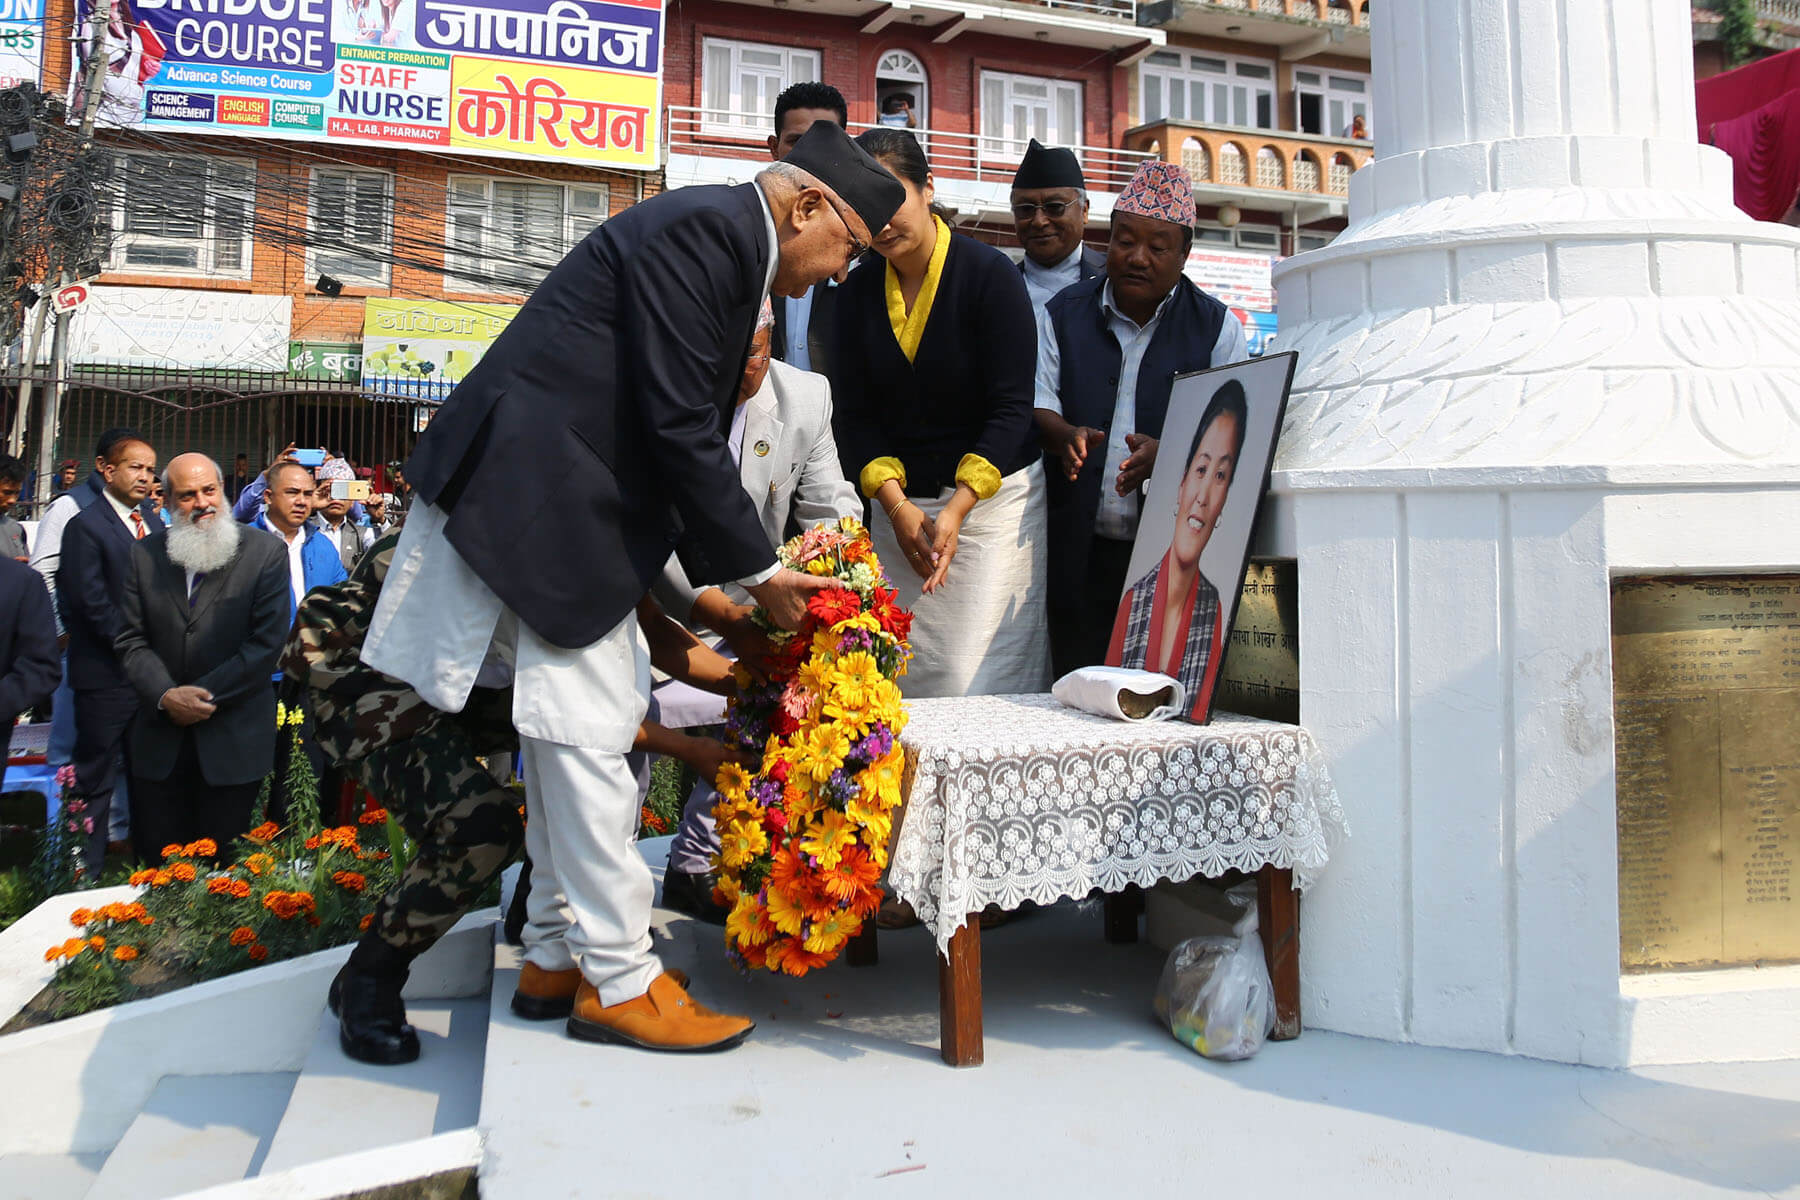 Prime Minister K P Oli pays his respect to the late Pasang Lhamu Sherpa at a ceremony marking the 26th memorial of the mountaineer in Kathmandu on Tuesday.